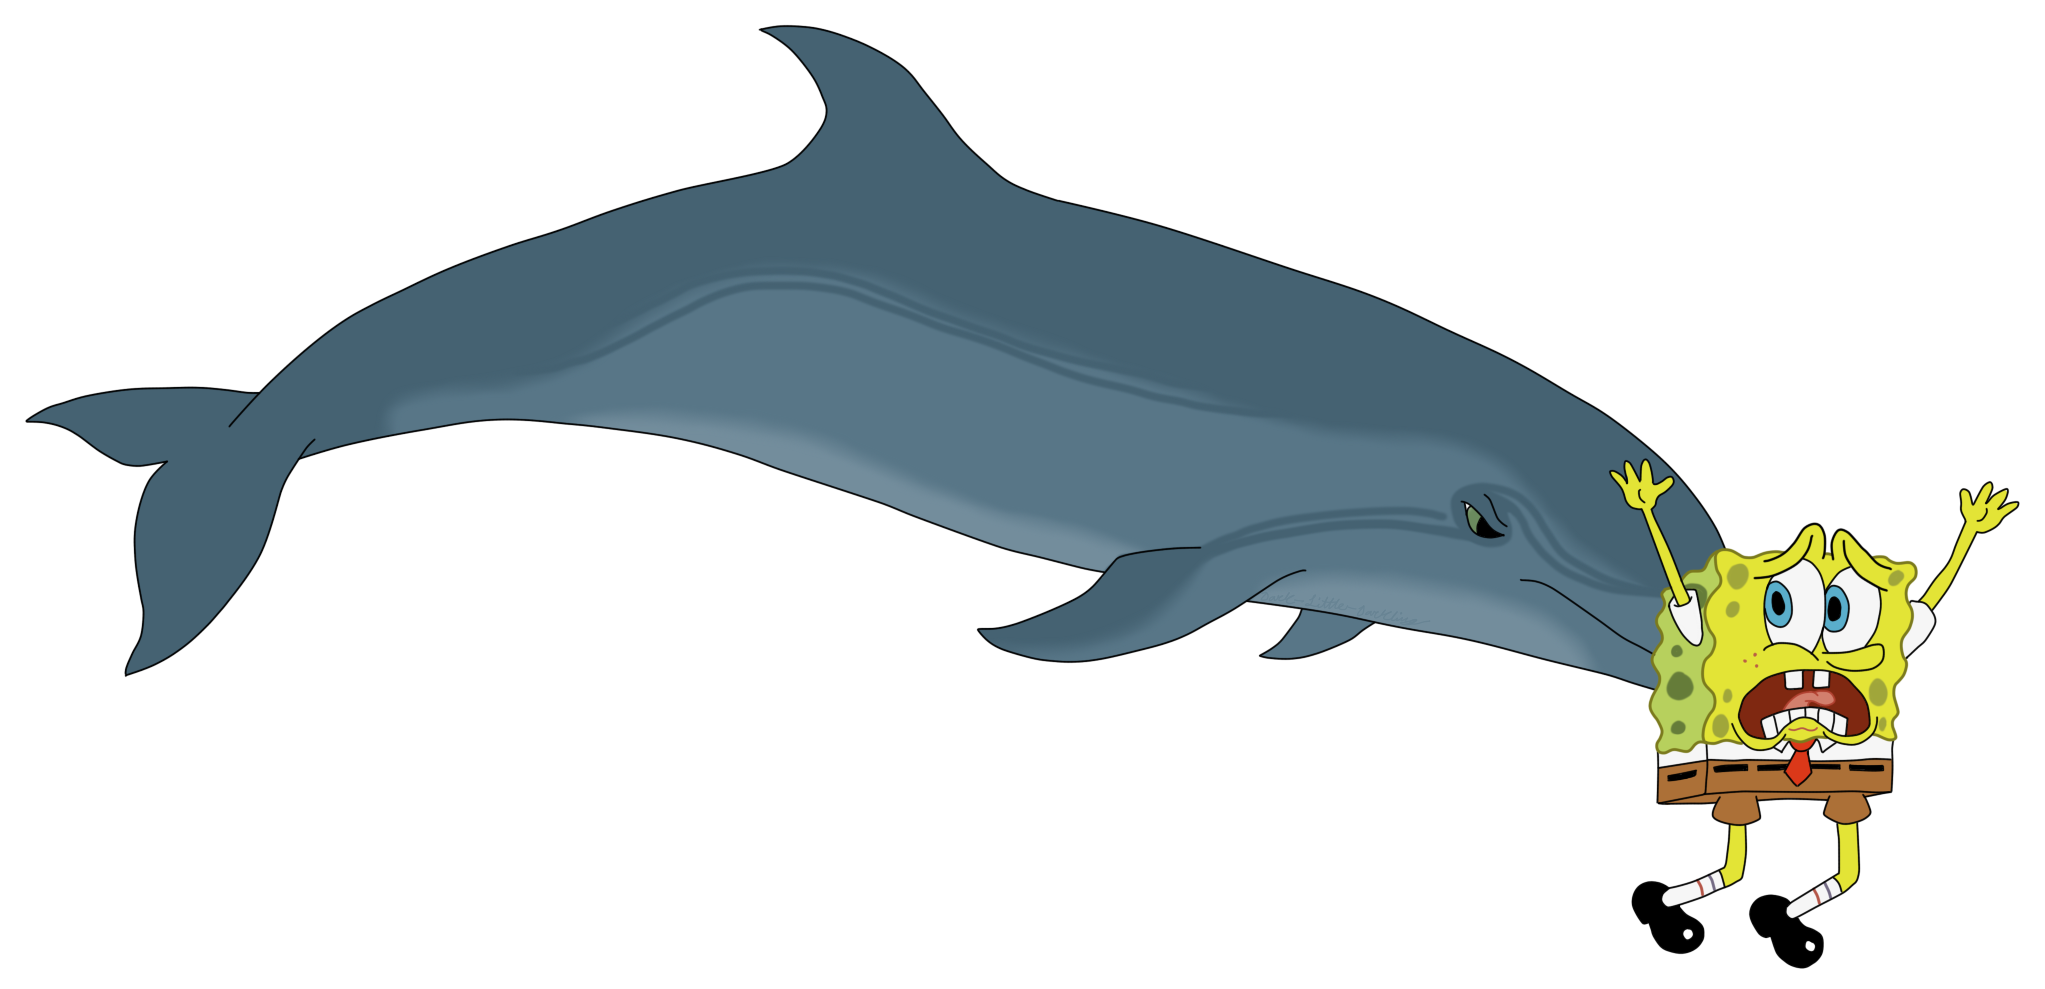 clip art library download A bottlenose dolphin sponging